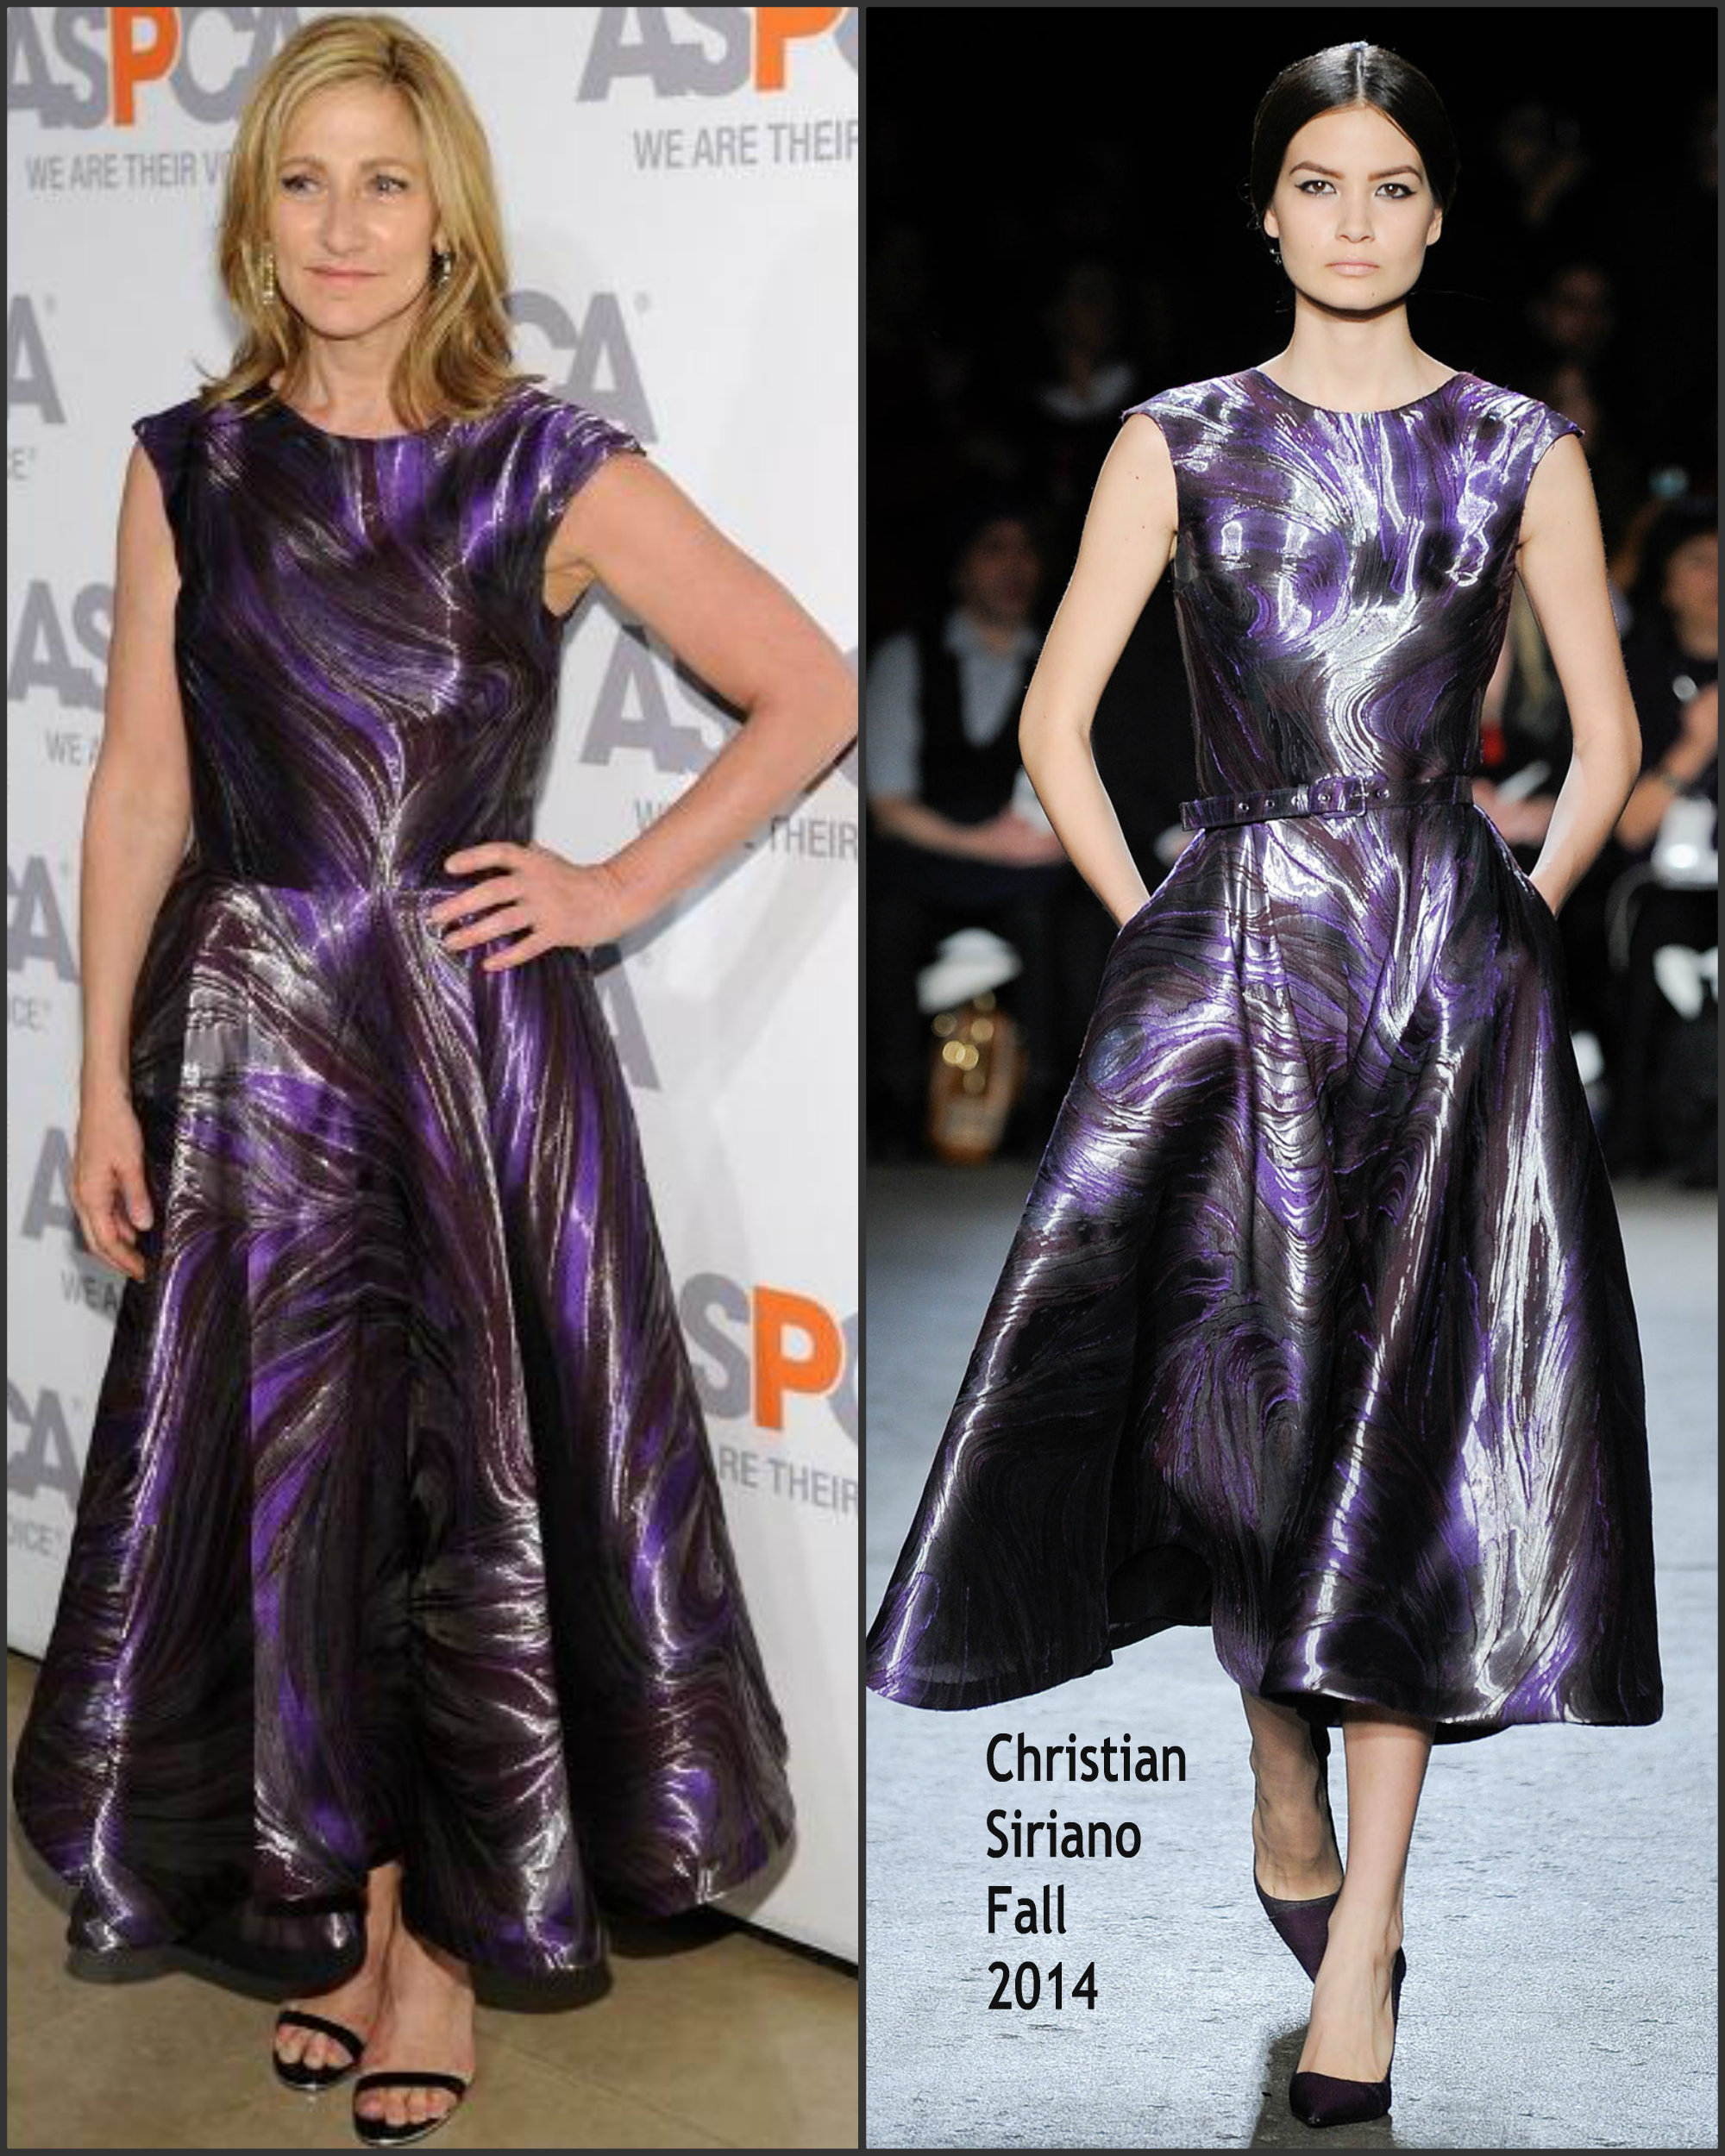 Edie-Falco-in-Christian-Siriano-at-Aspcas-18th-Annual-Bergh-Ball